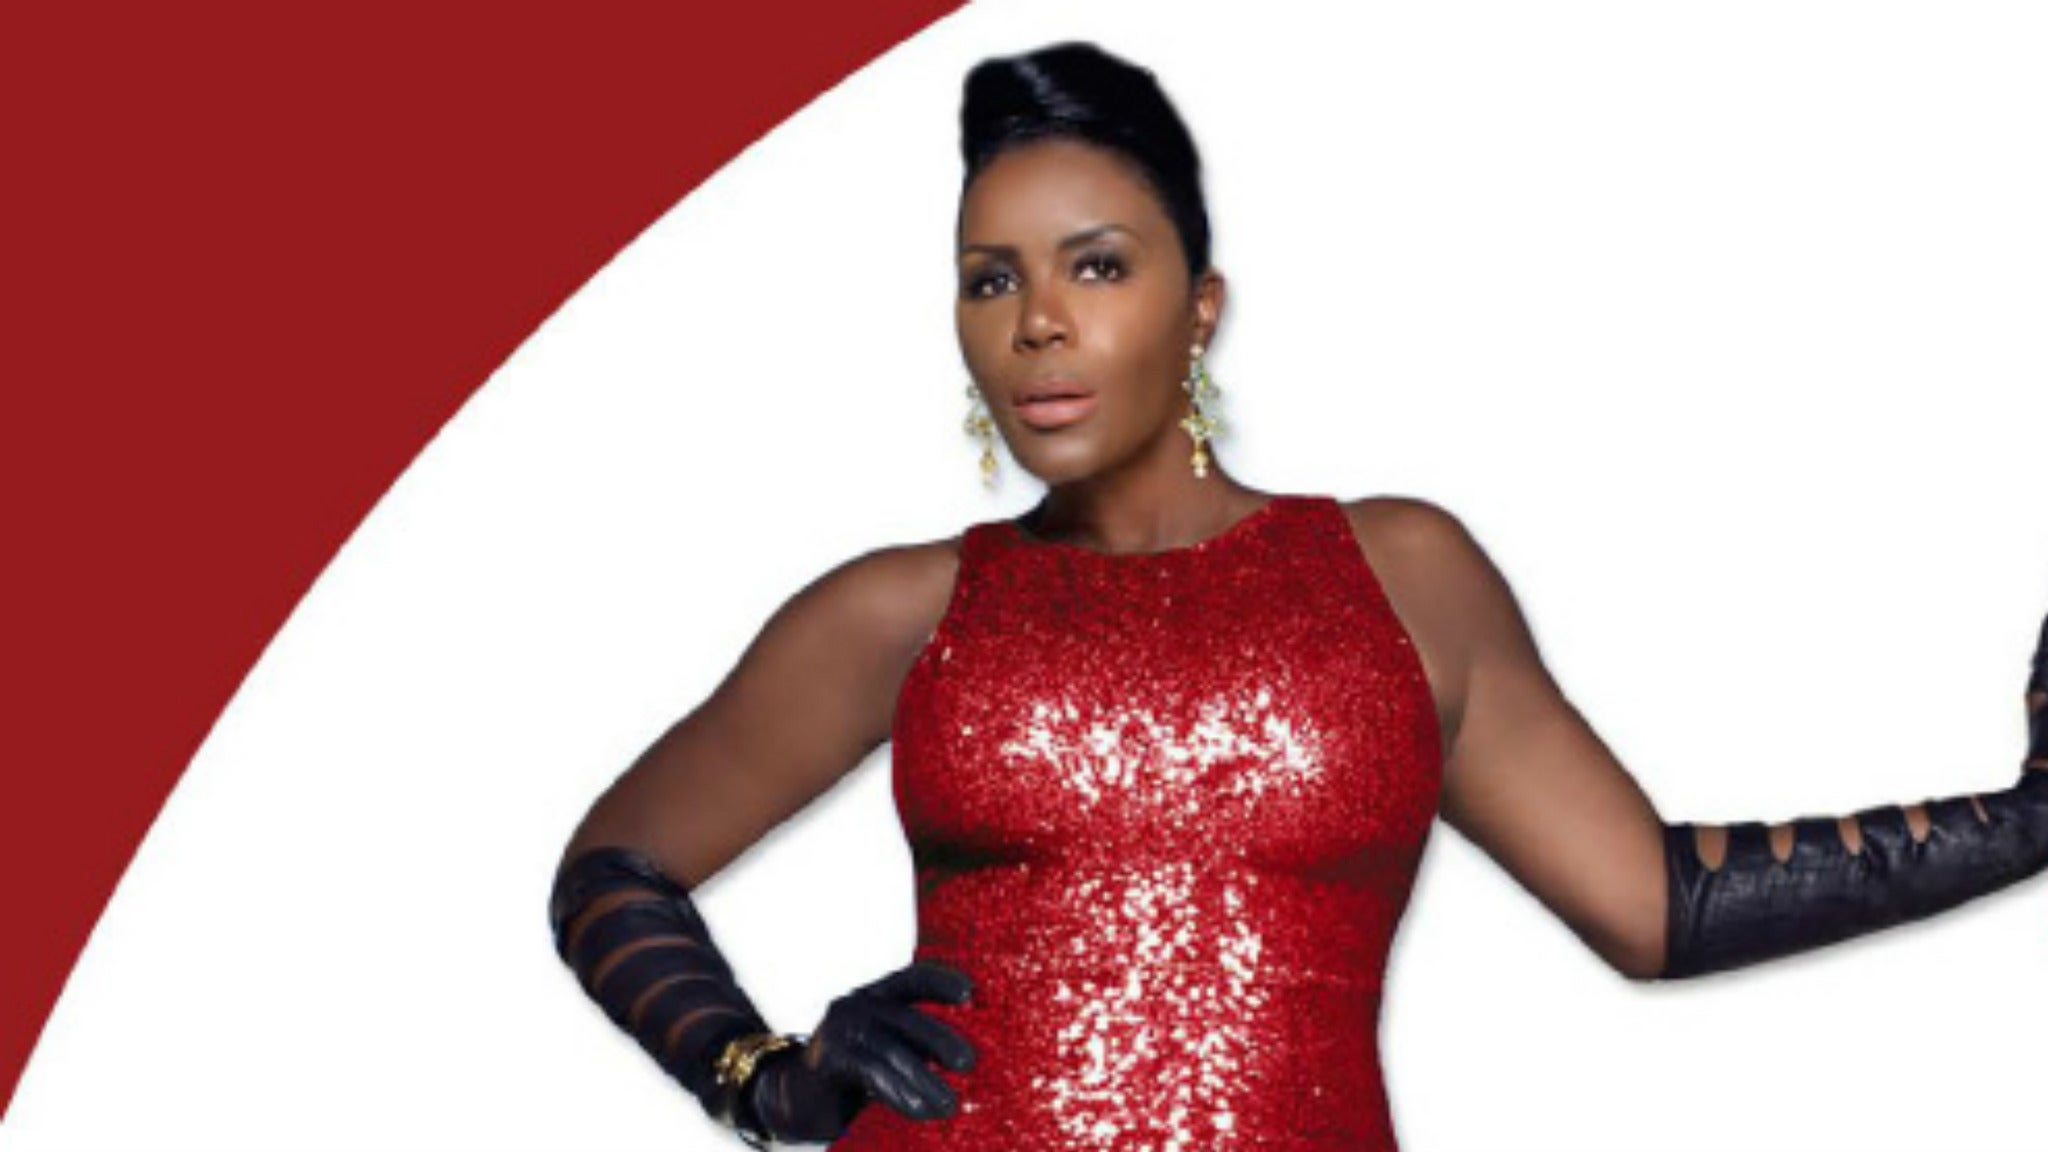 Sommore at Macon City Auditorium